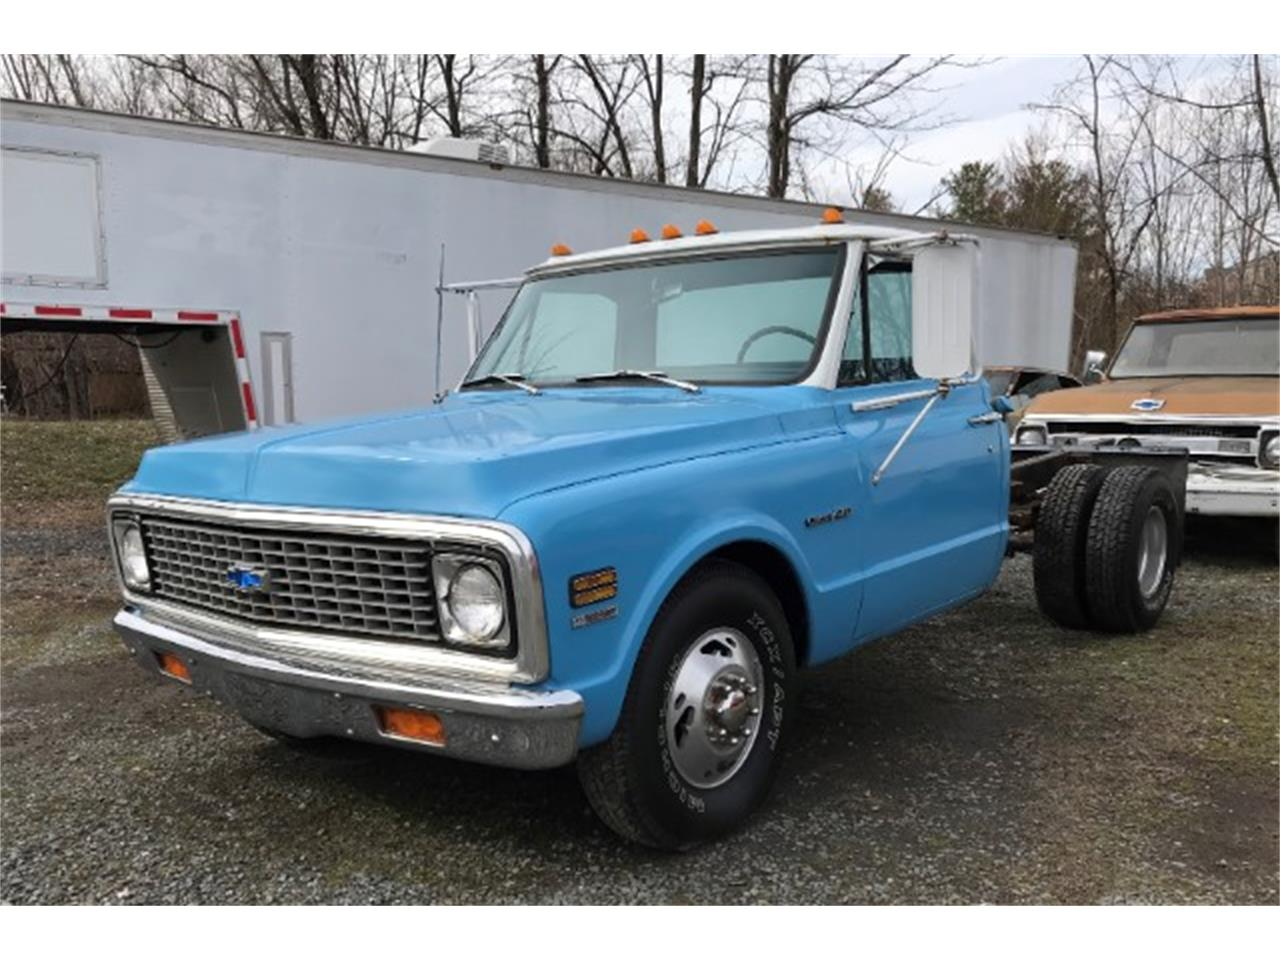 1971 Chevrolet 1 Ton Truck for sale in Harpers Ferry, WV – photo 6